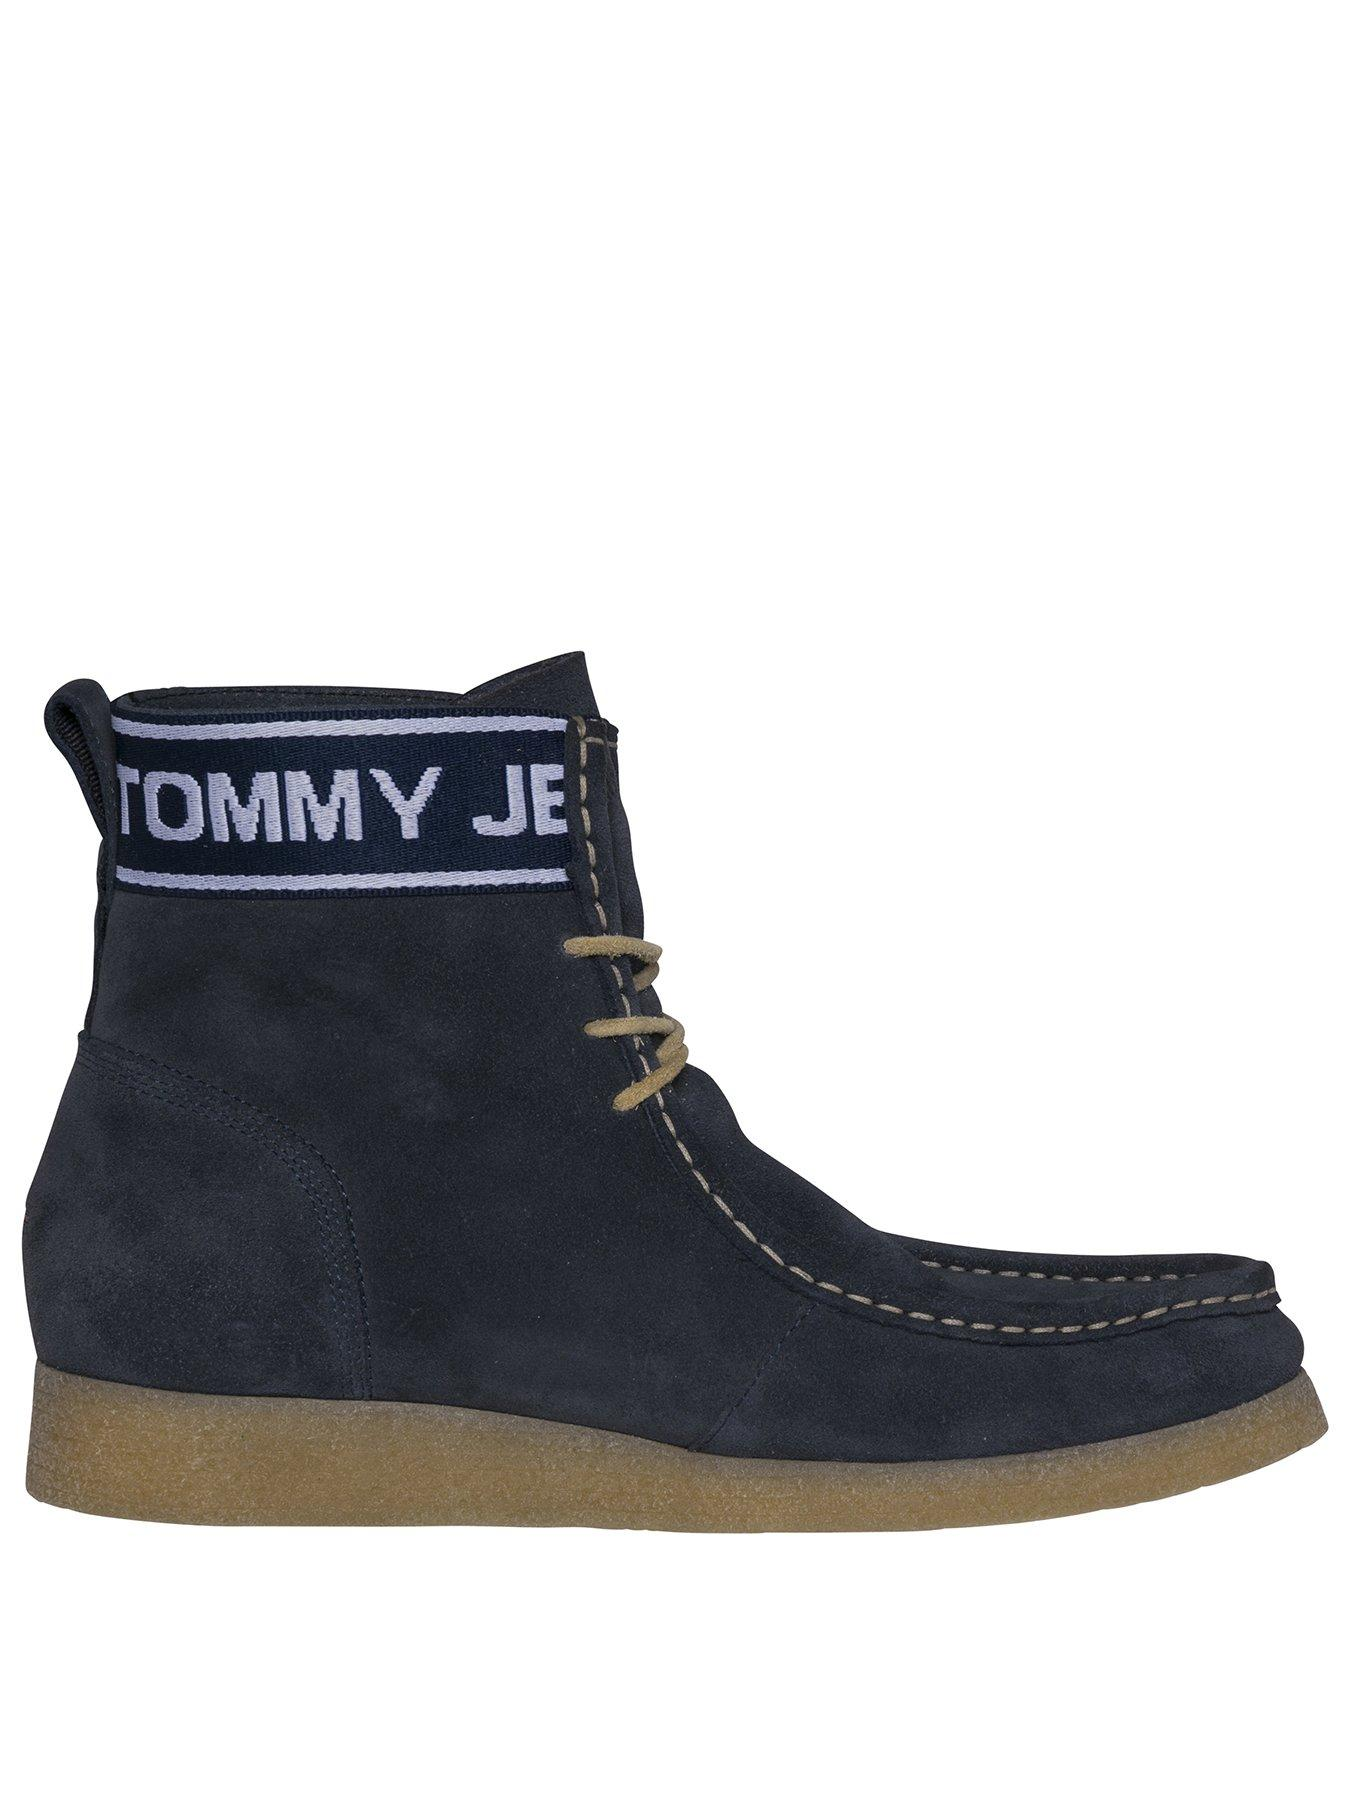 12   30% 50%   Casual   Shoes & boots   Men   very.co.uk